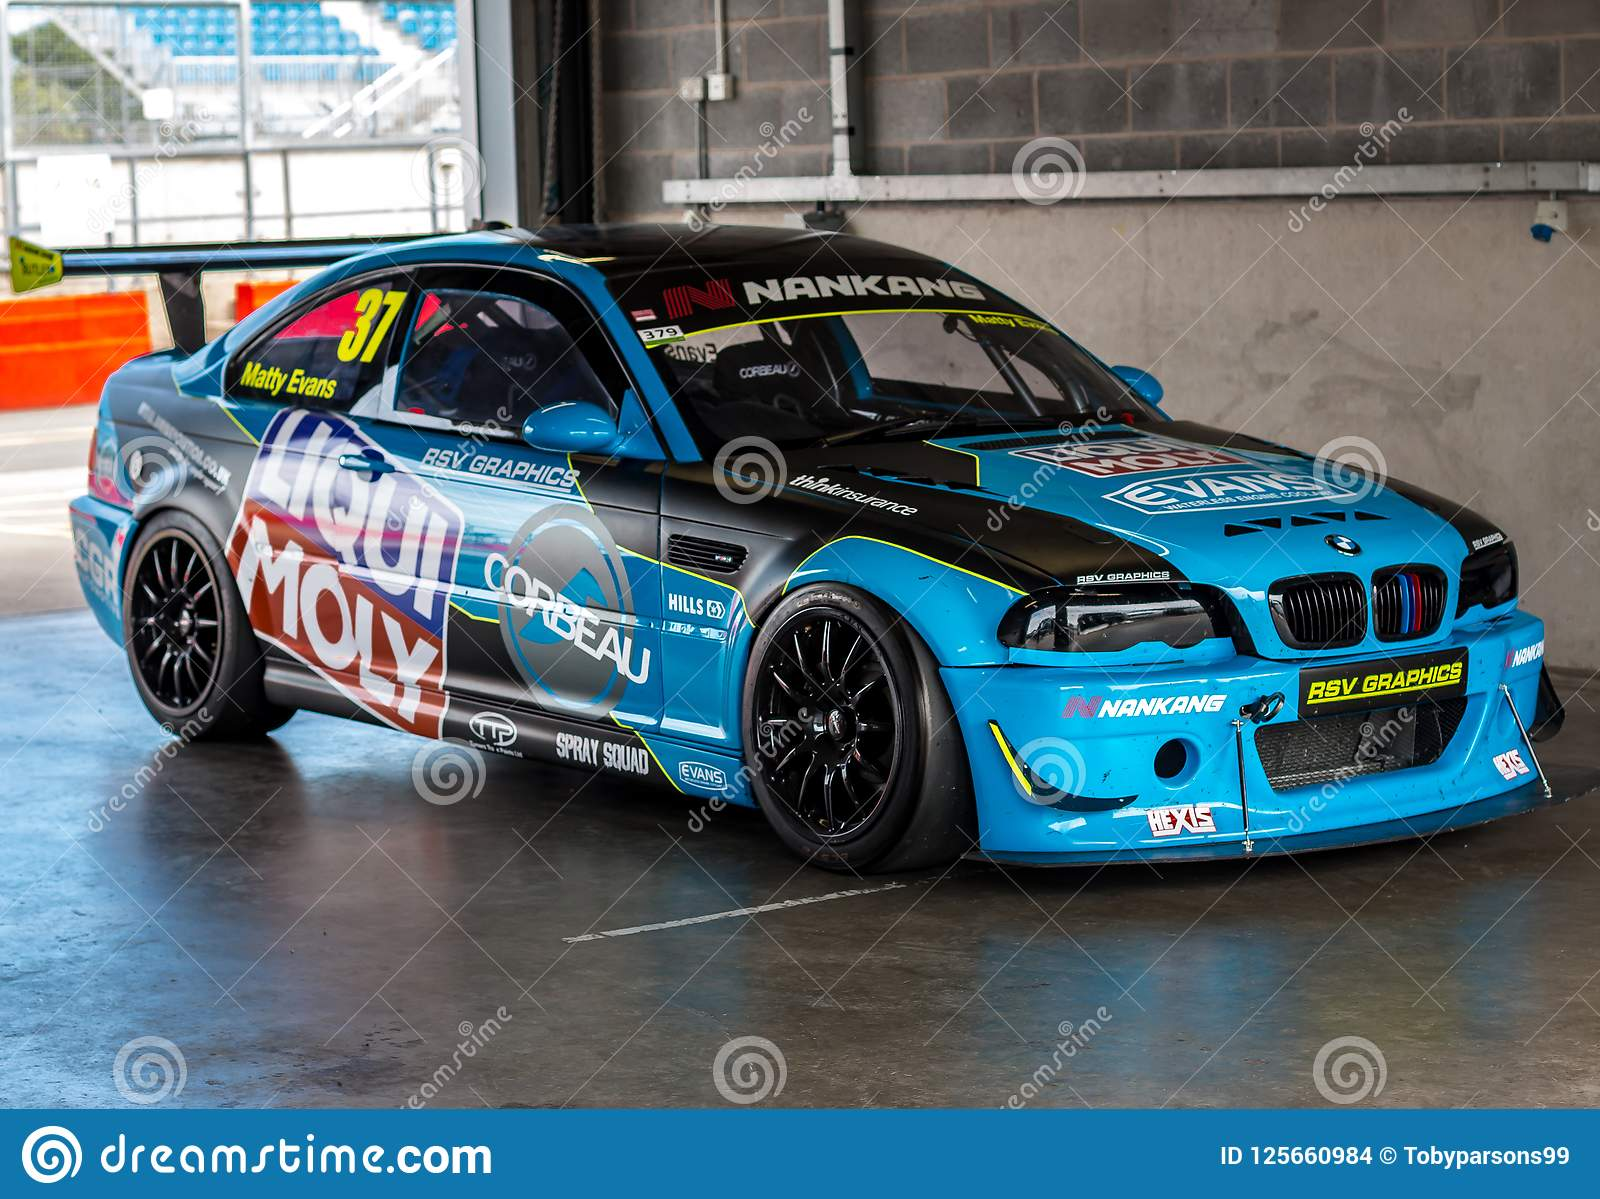 Bmw M3 E46 Racing Car Editorial Stock Image Image Of Automobile